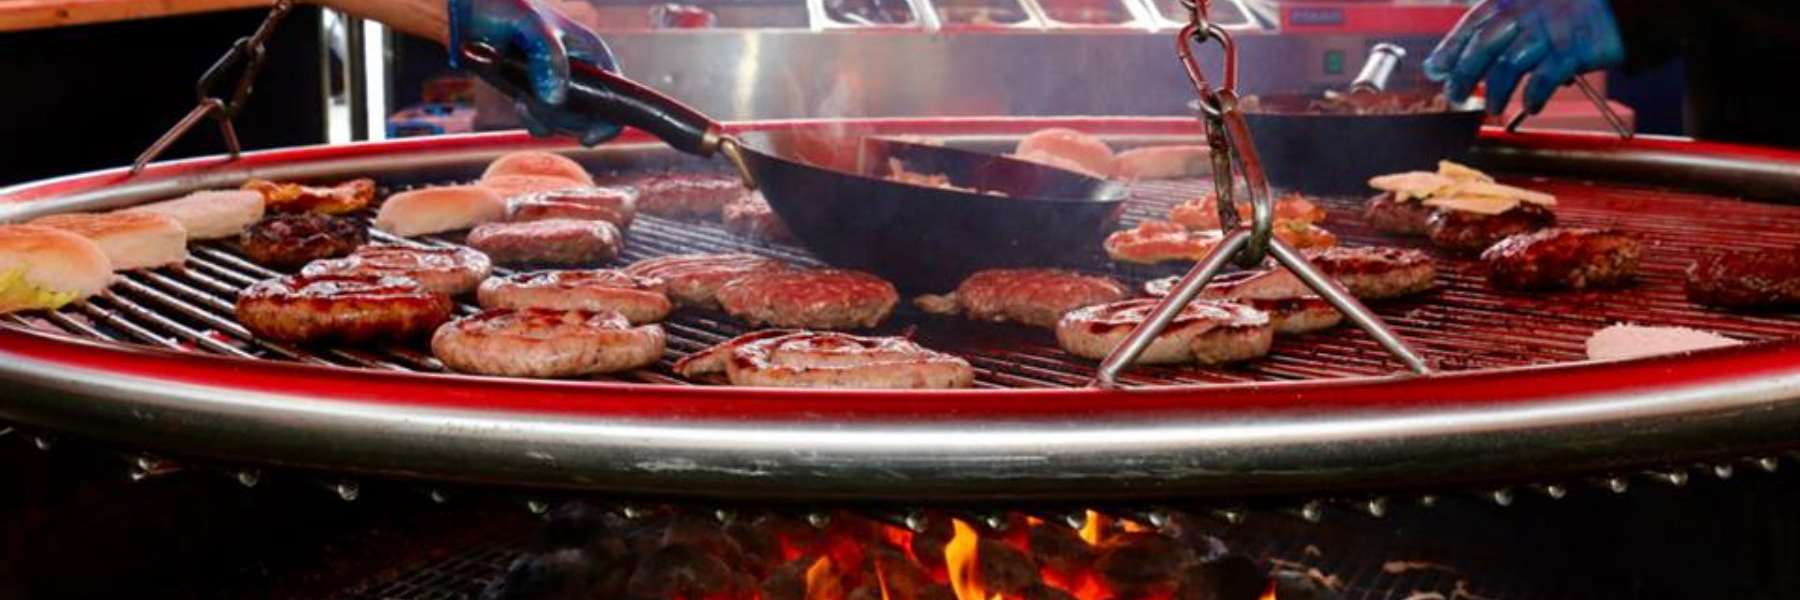 <p>Sanki Swinging Grill – Cooking Grate</p> <p>Showing variety of menu items, which can be cooked.</p> <p>Suitable for any hospitality venue looking to extend their menu offering and maximise the use of their outdoor space whilst relieving the kitchen staff</p>